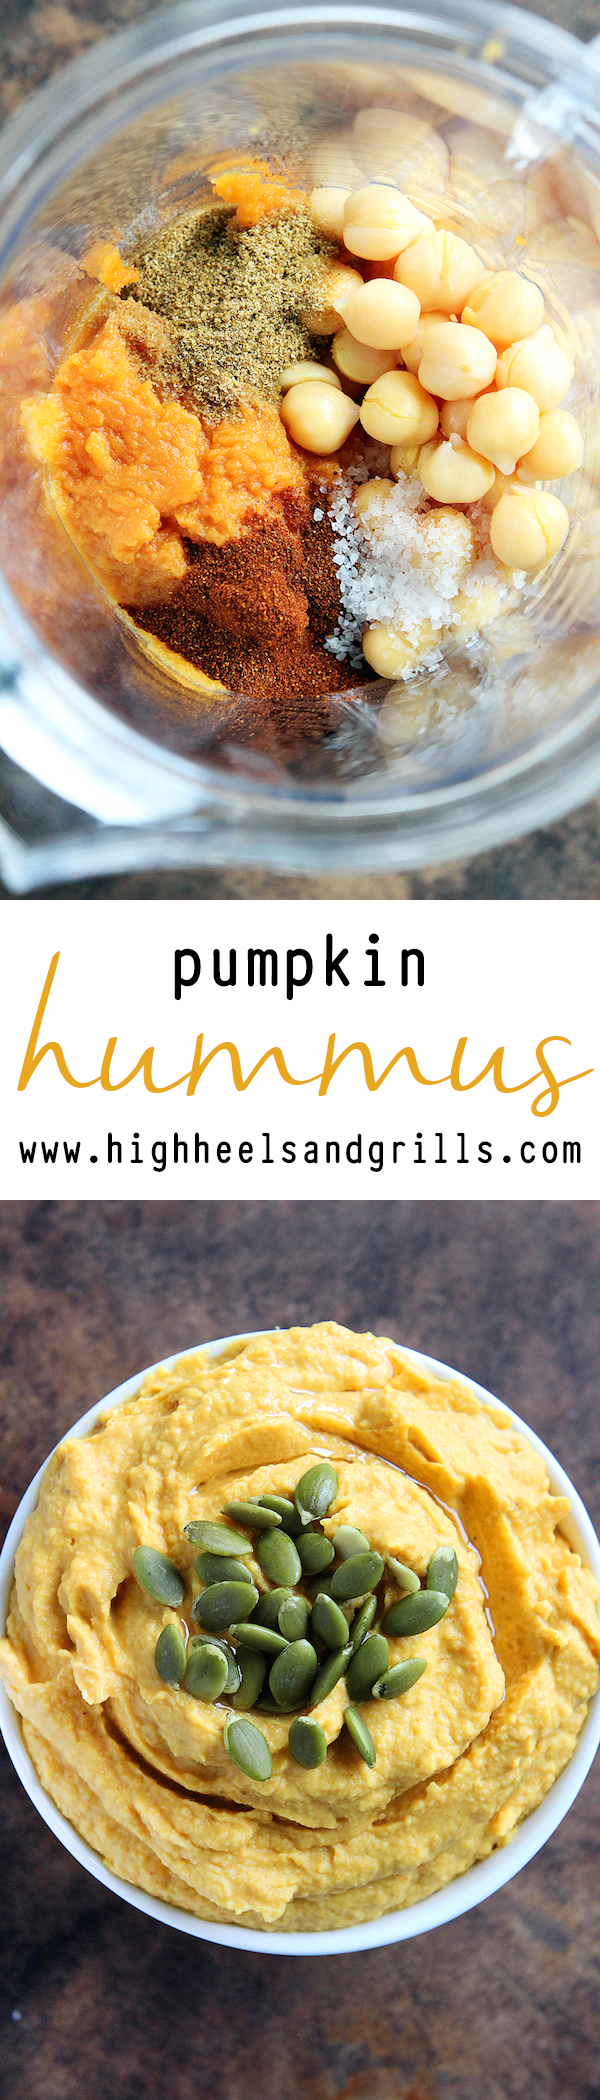 This Pumpkin Hummus is the best hummus I have ever had in my entire life. And that's not even an exaggeration. PERXFOOD.COM